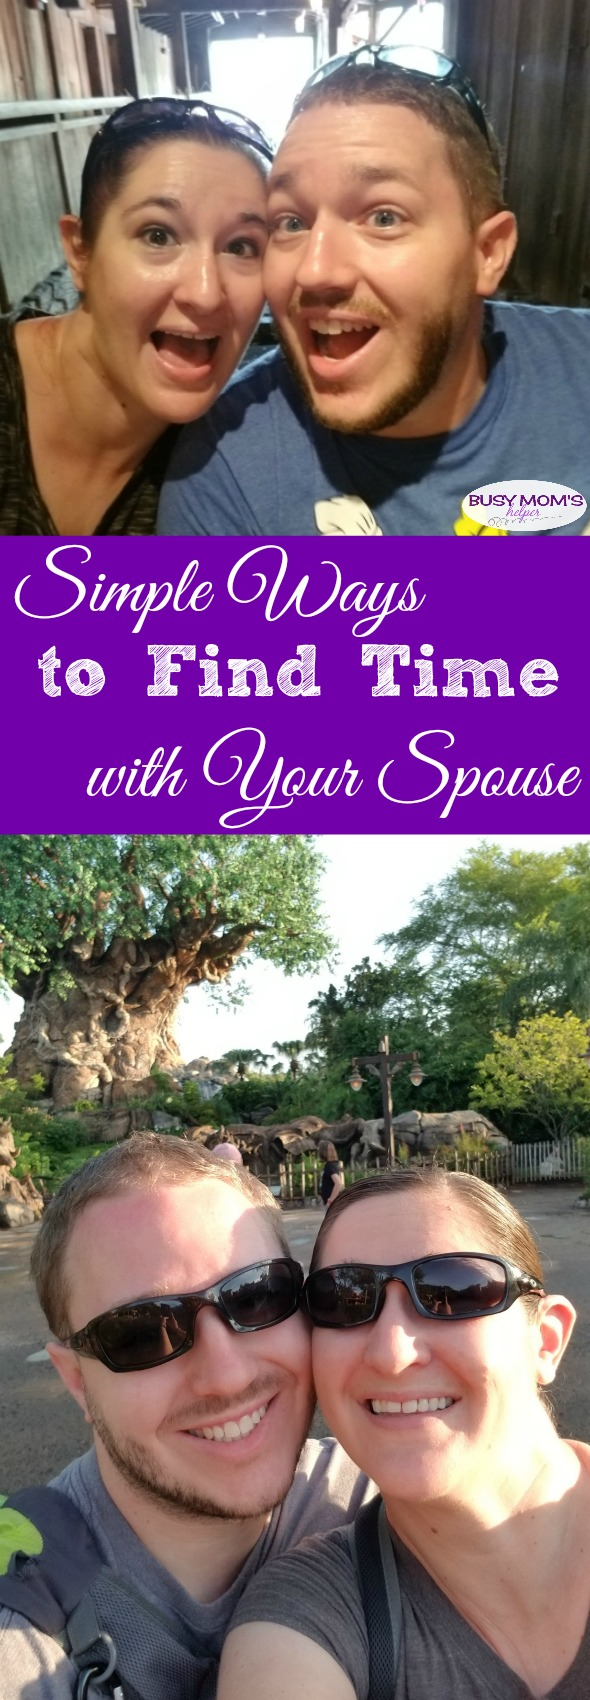 Simple Ways to Find Time With Your Spouse #relationships #marriage #dating #parenting